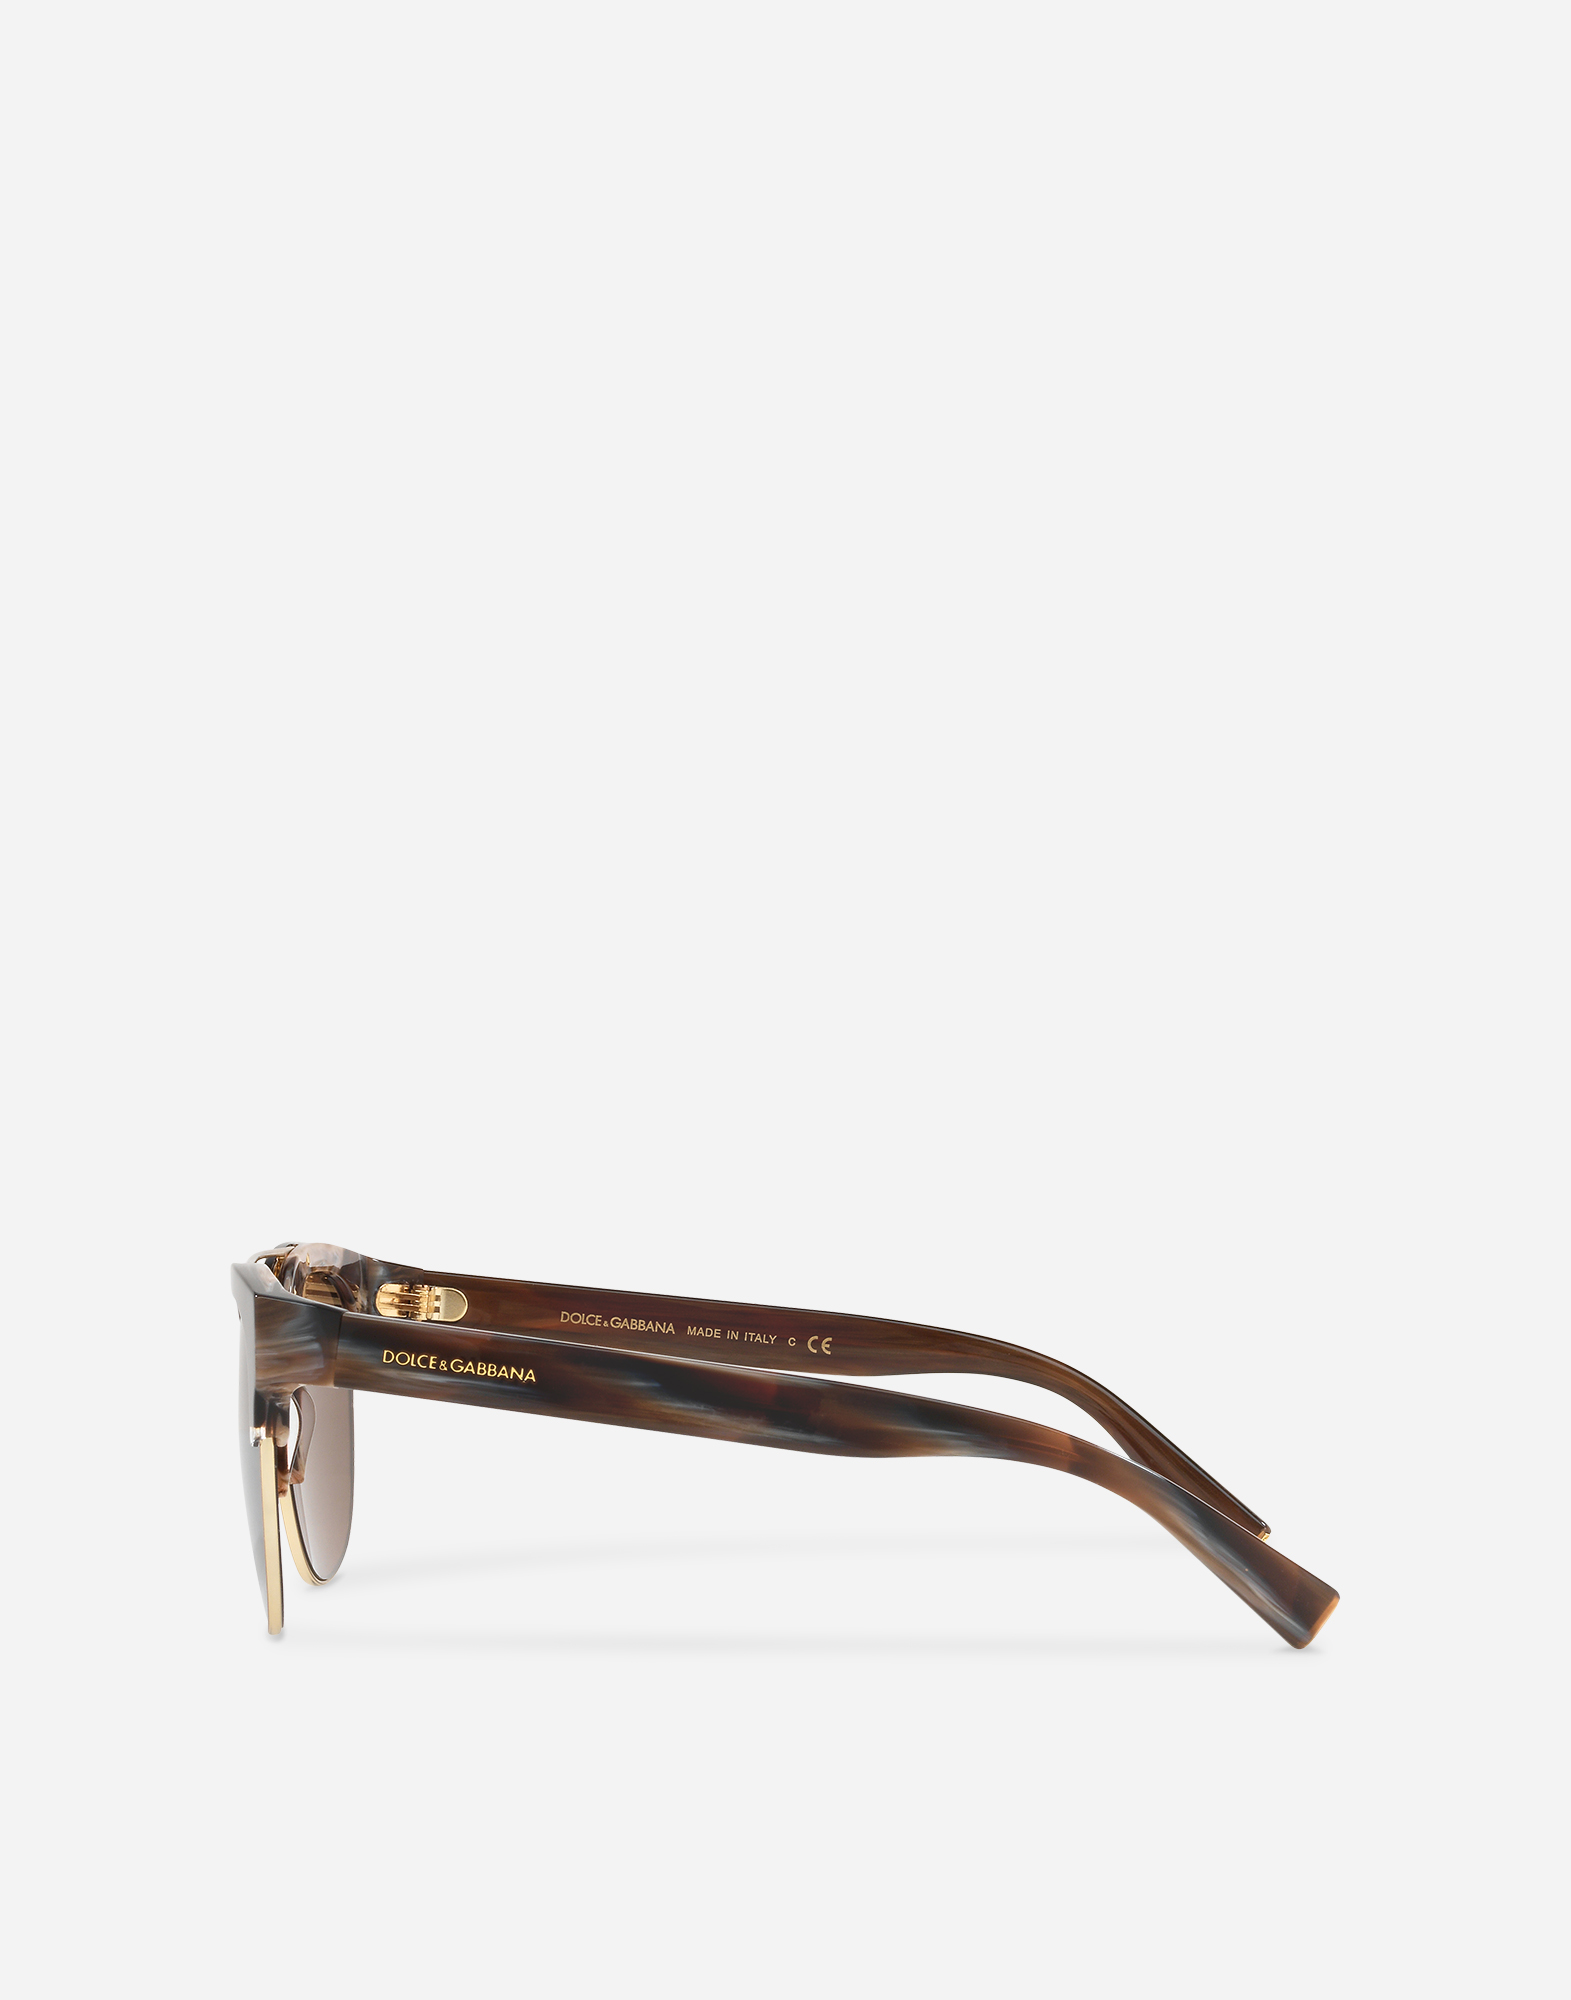 Dolce&Gabbana SQUARE SUNGLASSES WITH DOUBLE BRIDGE IN METAL